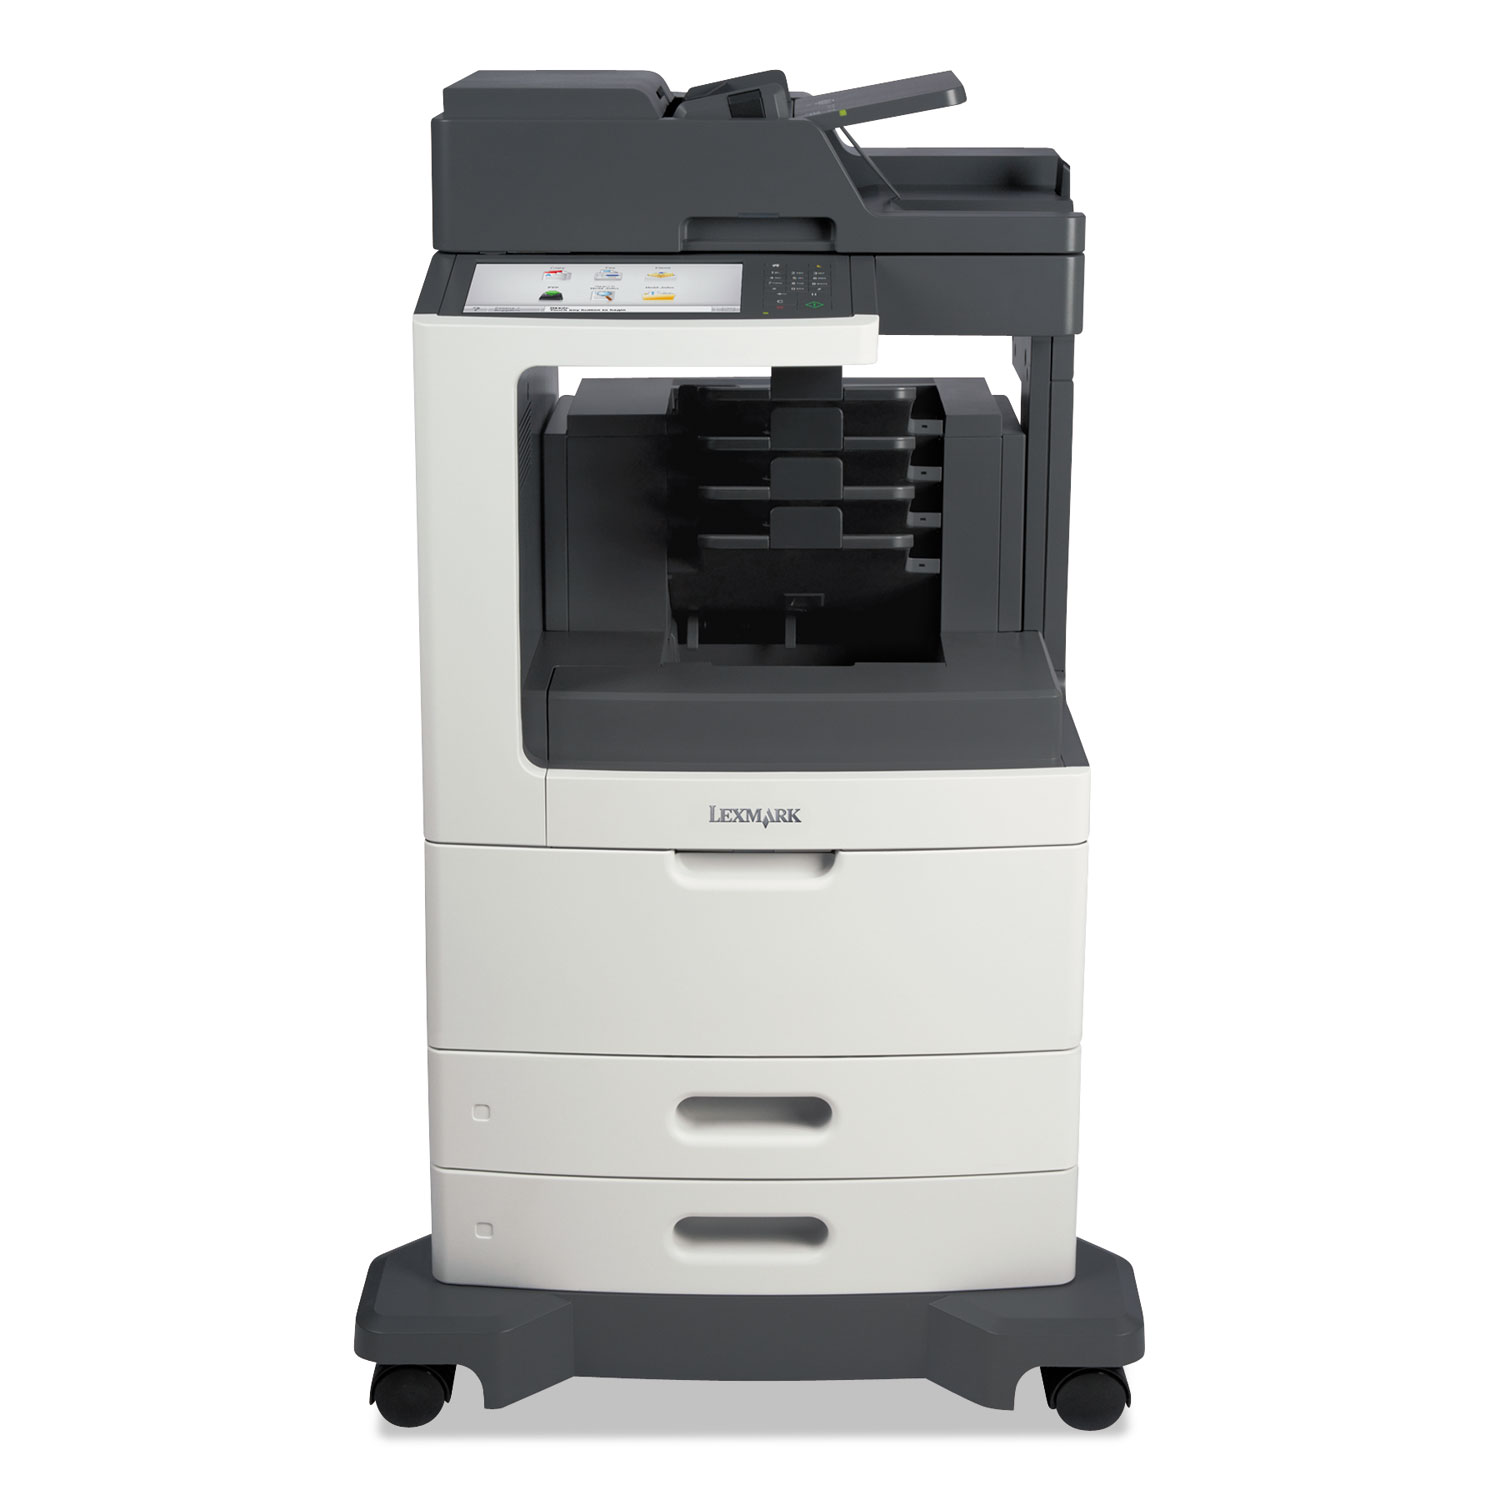 MX811dme Multifunction Laser Printer, Copy/Fax/Print/Scan